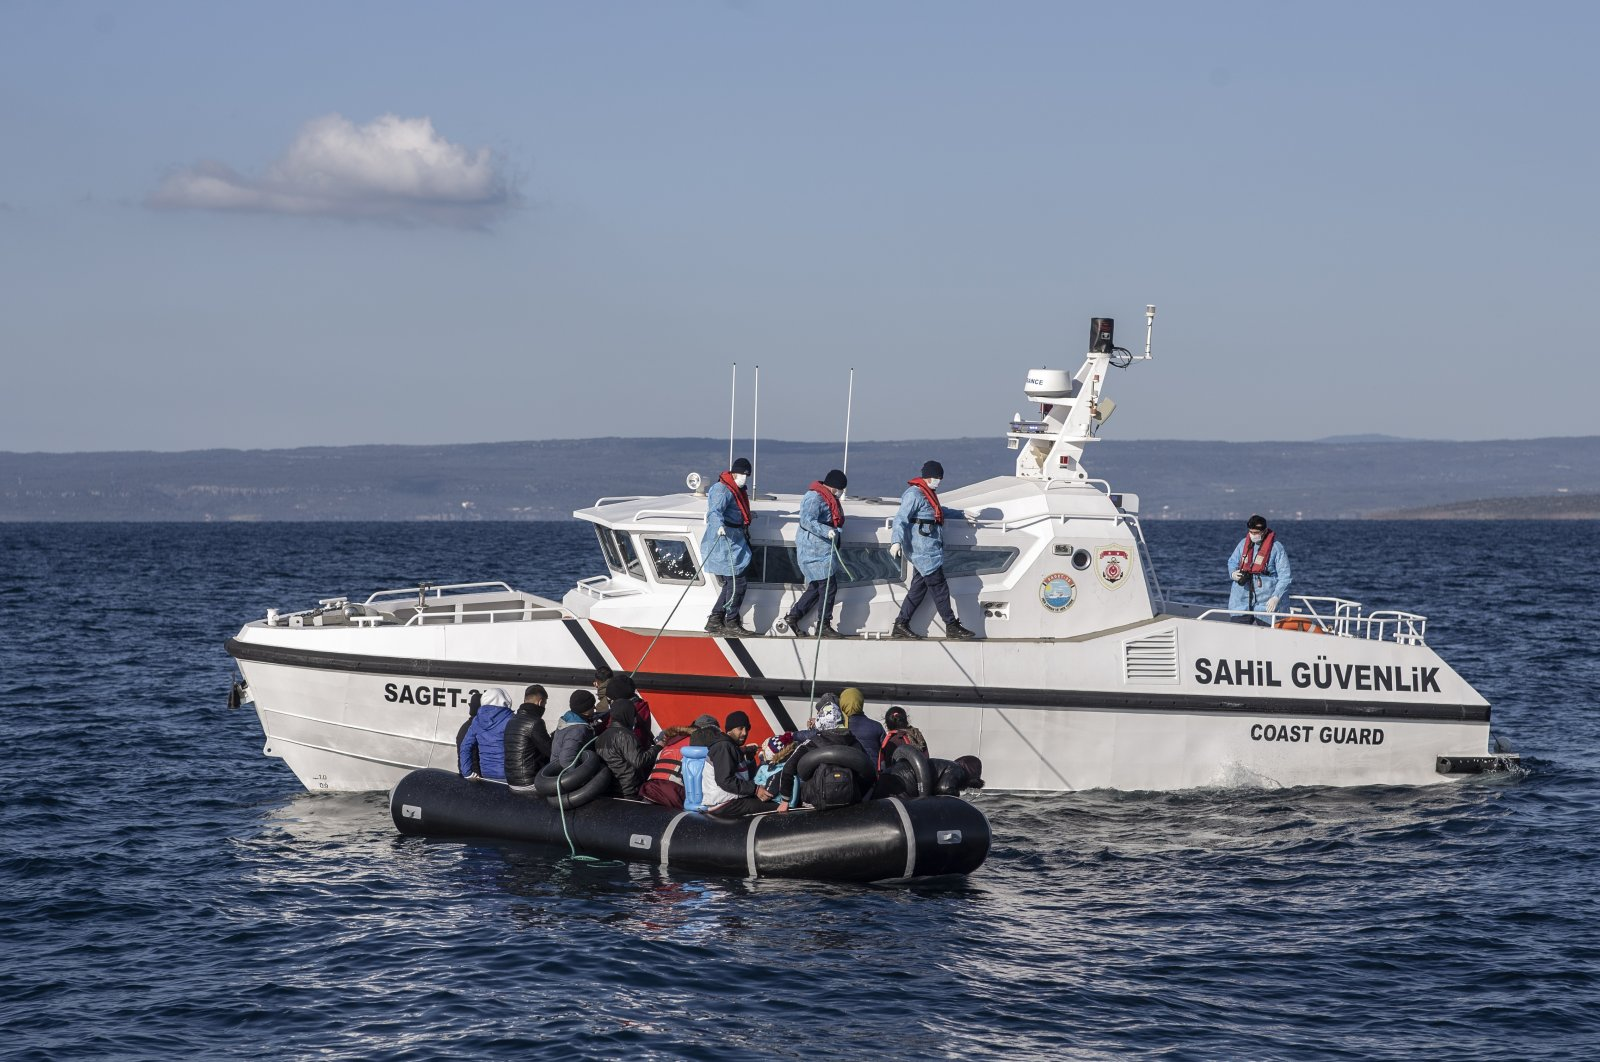 Members of the Turkish Coast Guard take migrants, who were allegedly pushed back from the Greece side, on a boat during a patrol to search and rescue migrants offshore the Ayvalık district in Balikesir, Turkey, 10 April 2021. (EPA Photo)